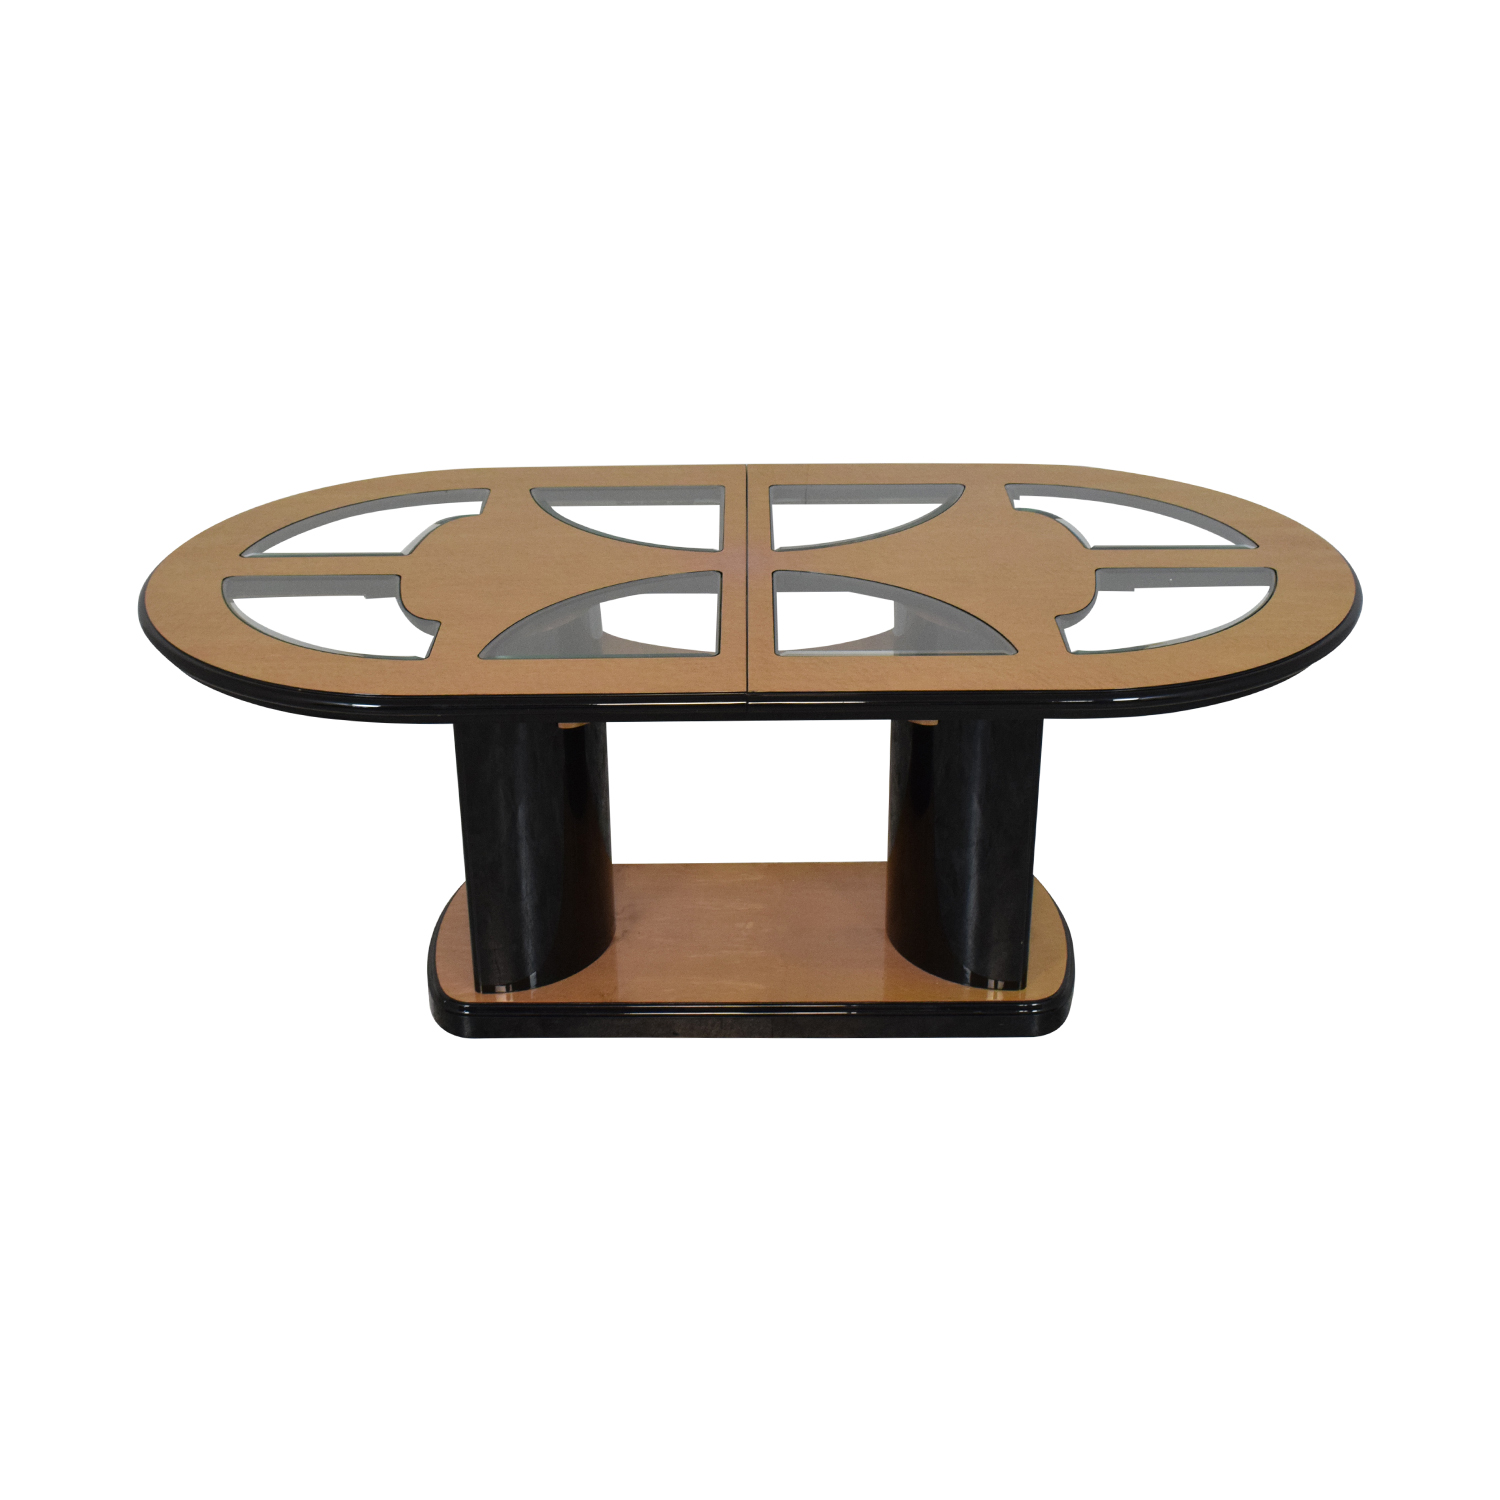 Roma Furniture Roma Imported Dining Table price